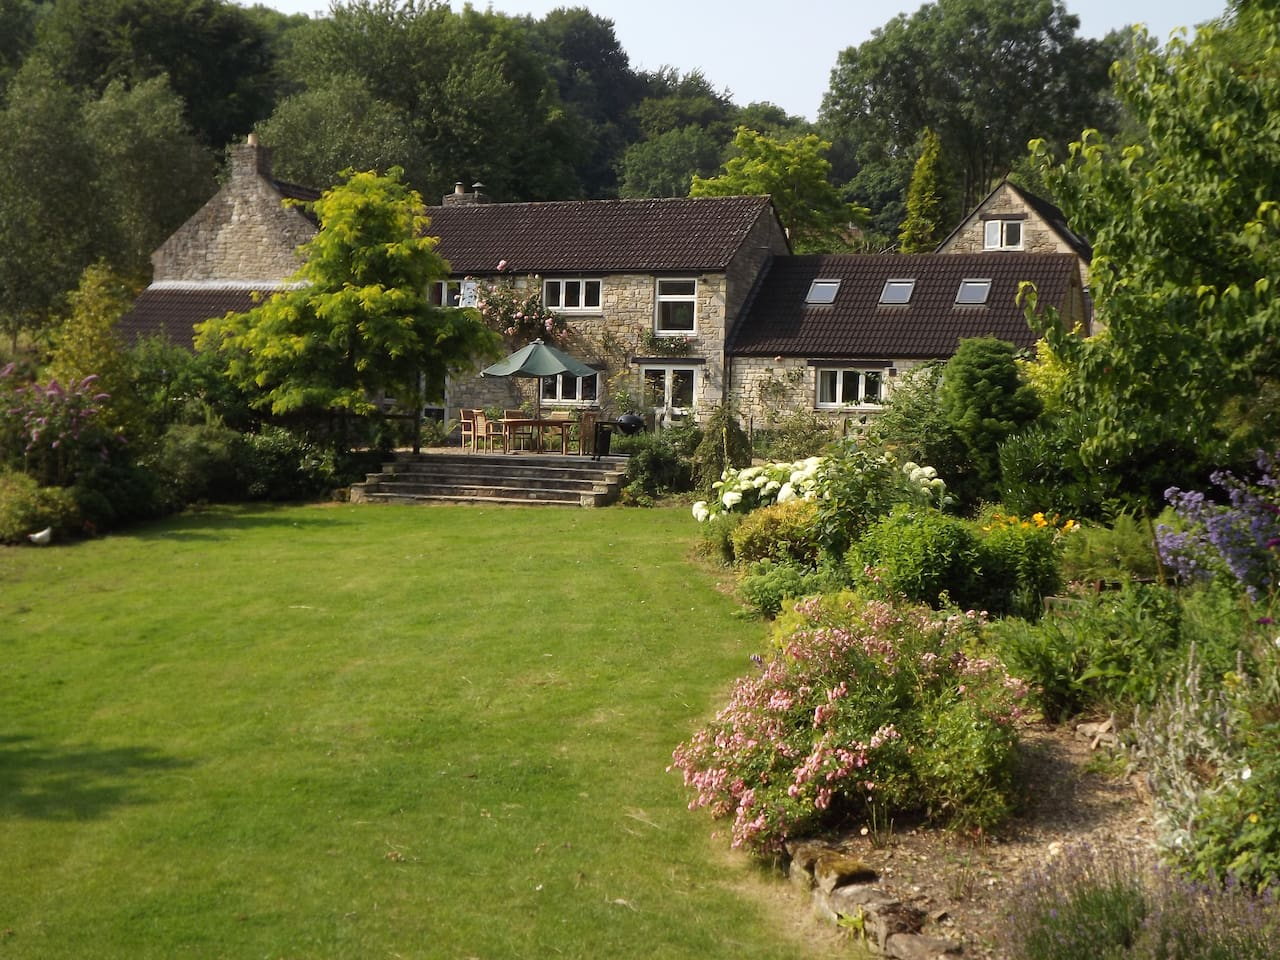 The picturesque riverside lawn at River House Bath  can be set up with garden games, such as croquet, badminton and clock golf. There are sun loungers on the paved terrace directly beside the river, a separate BBQ terrace (shown) and private fishing